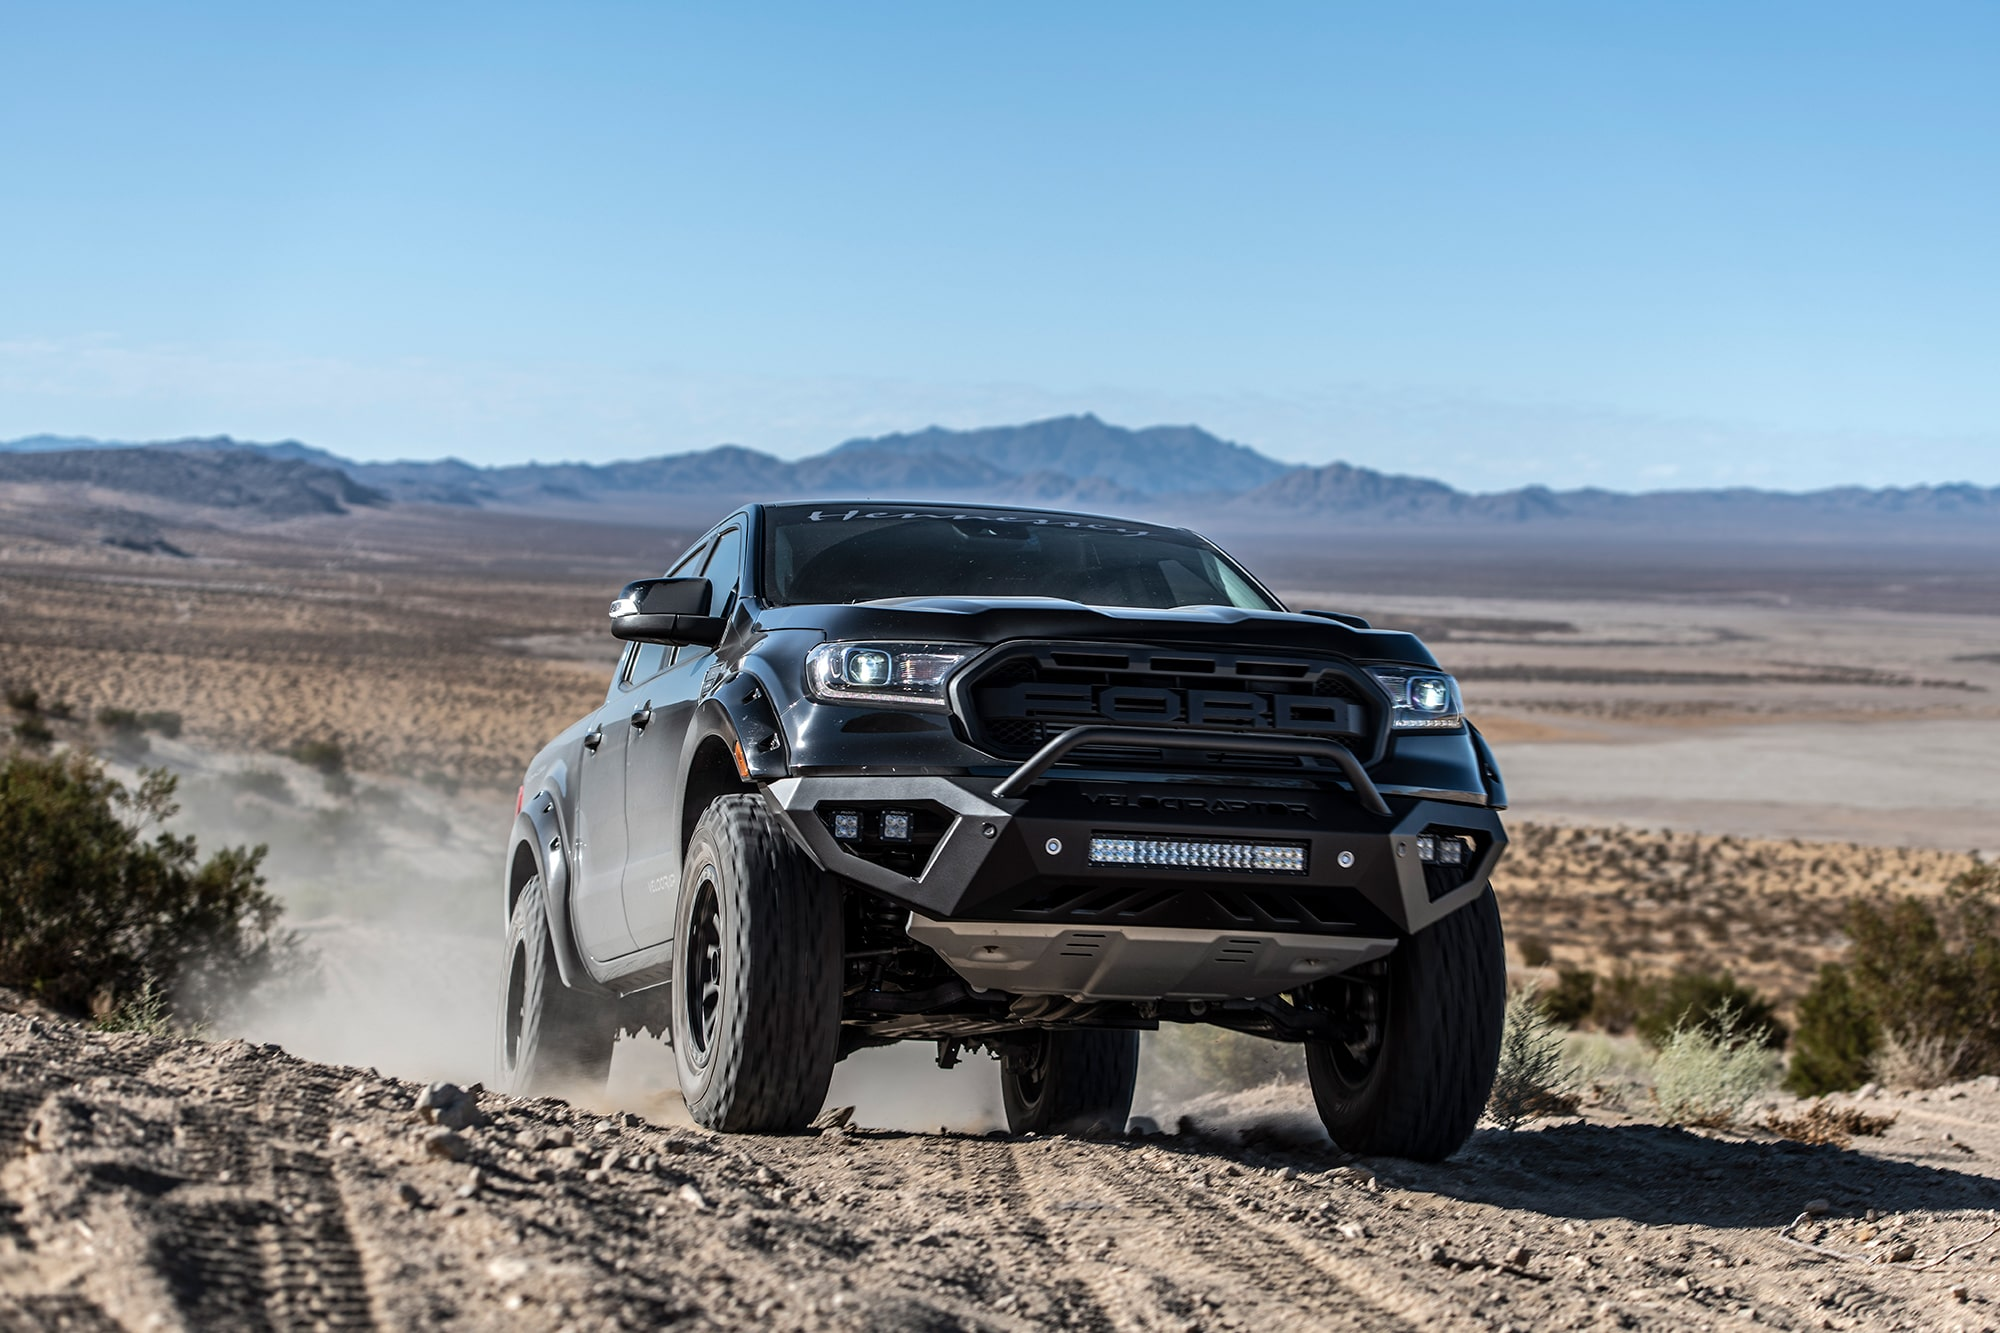 2021 Ford Ranger Upgrades by Hennessey Performance